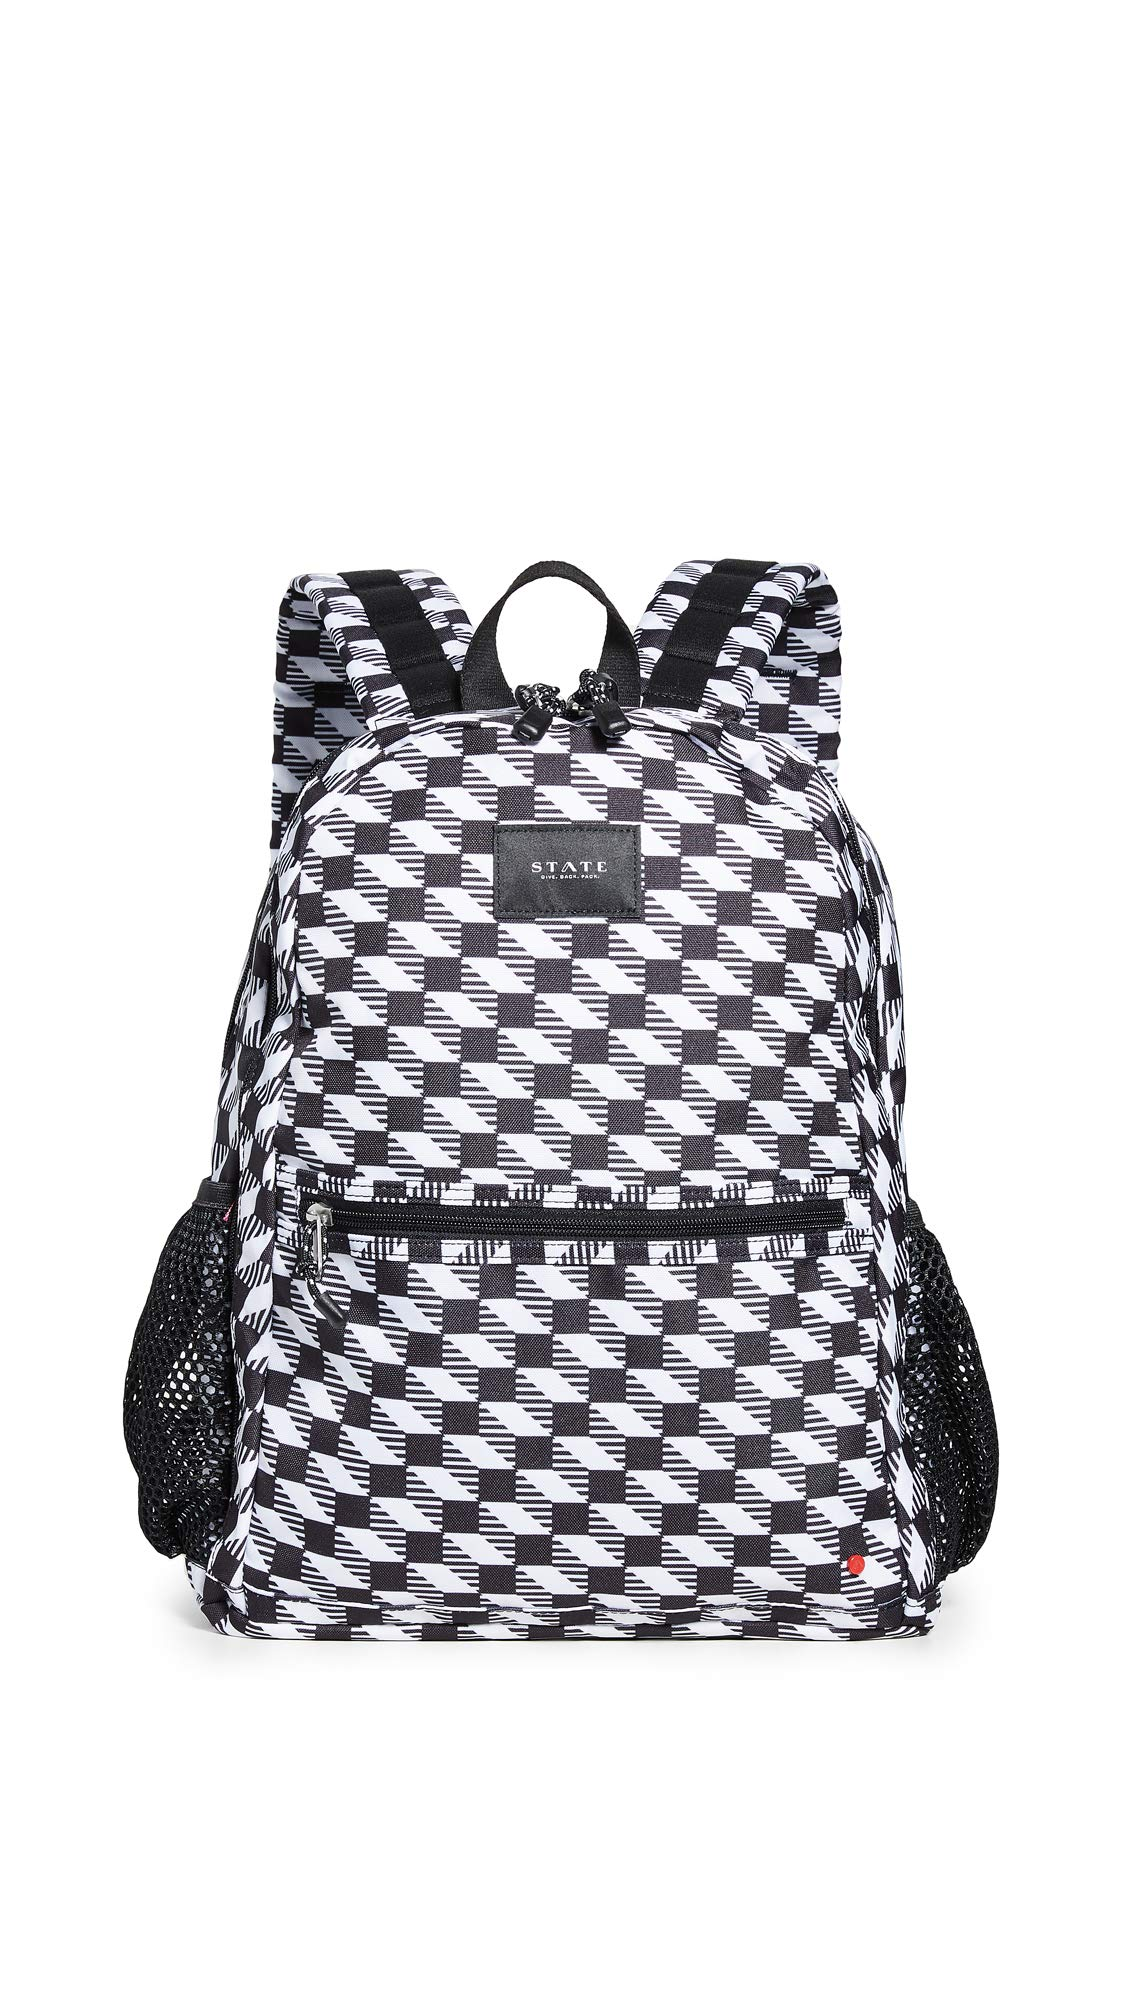 STATE Women's Bedford Backpack, Black/White, One Size by STATE Bags